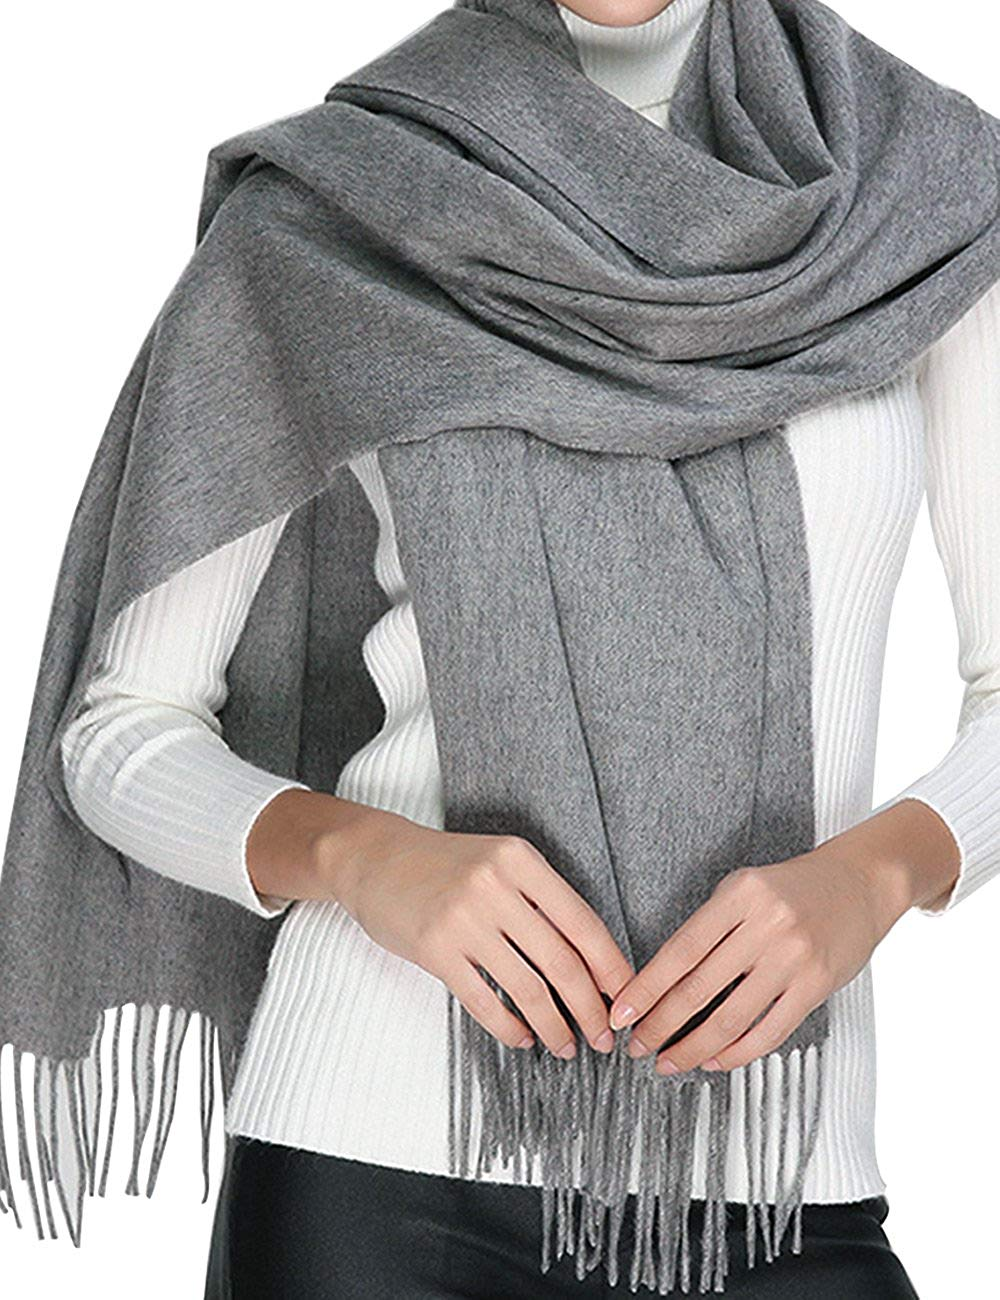 7a58793ca Get Quotations · Cashmere Wool Scarf,Large Soft Women Men Scarves Winter  Warm Shawl Gift